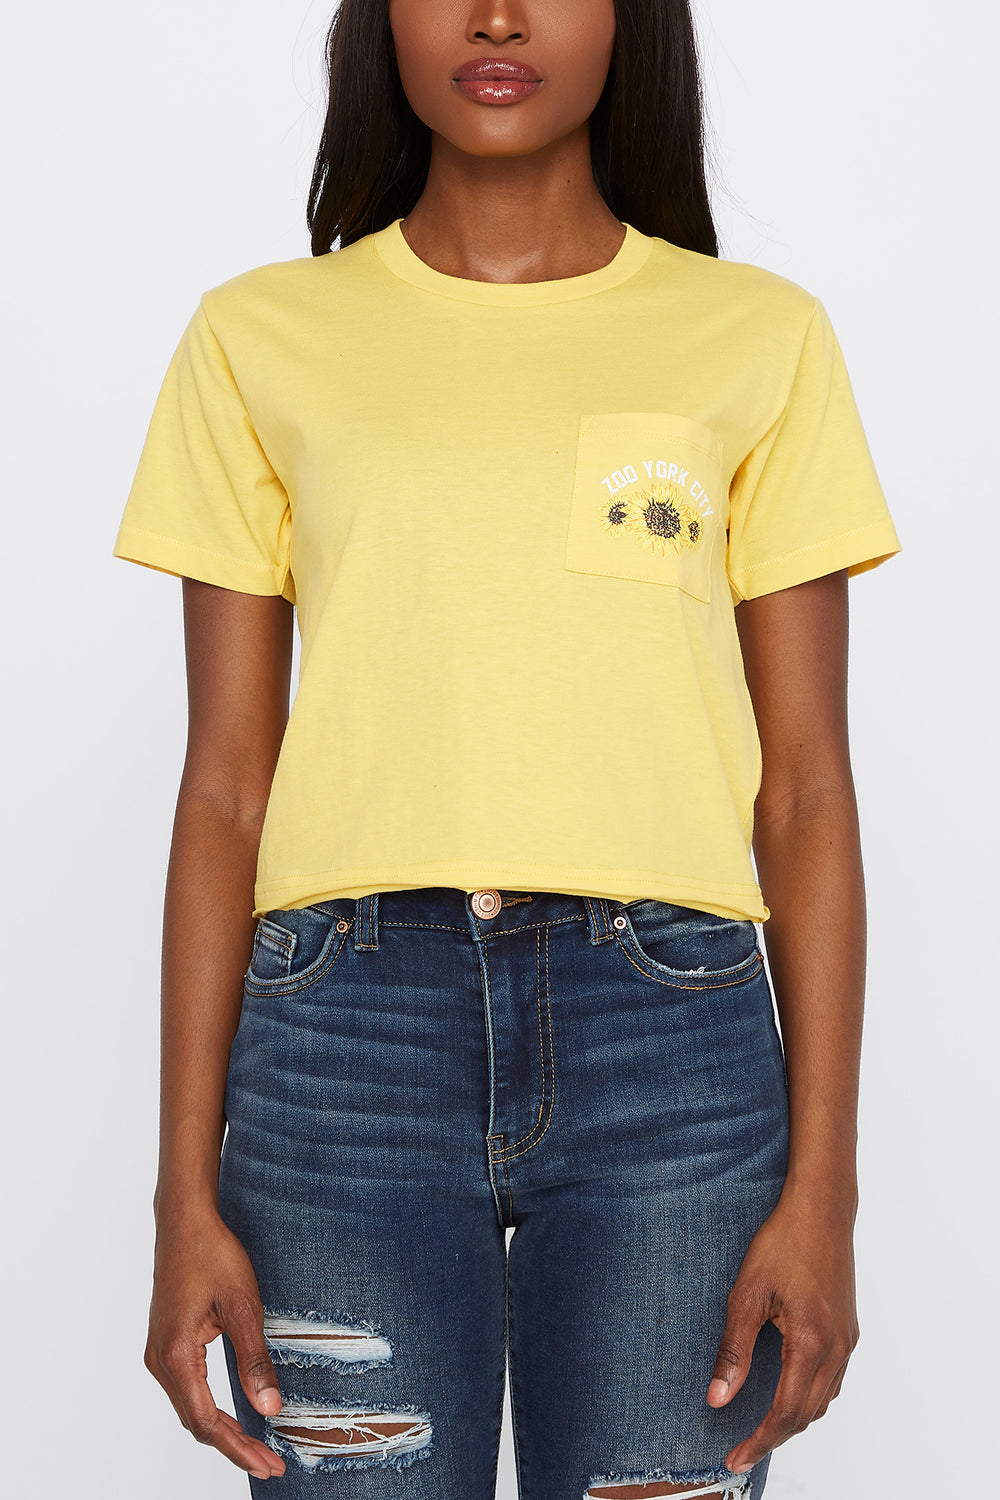 Zoo York Womens Sunflower Pocket T-Shirt Yellow